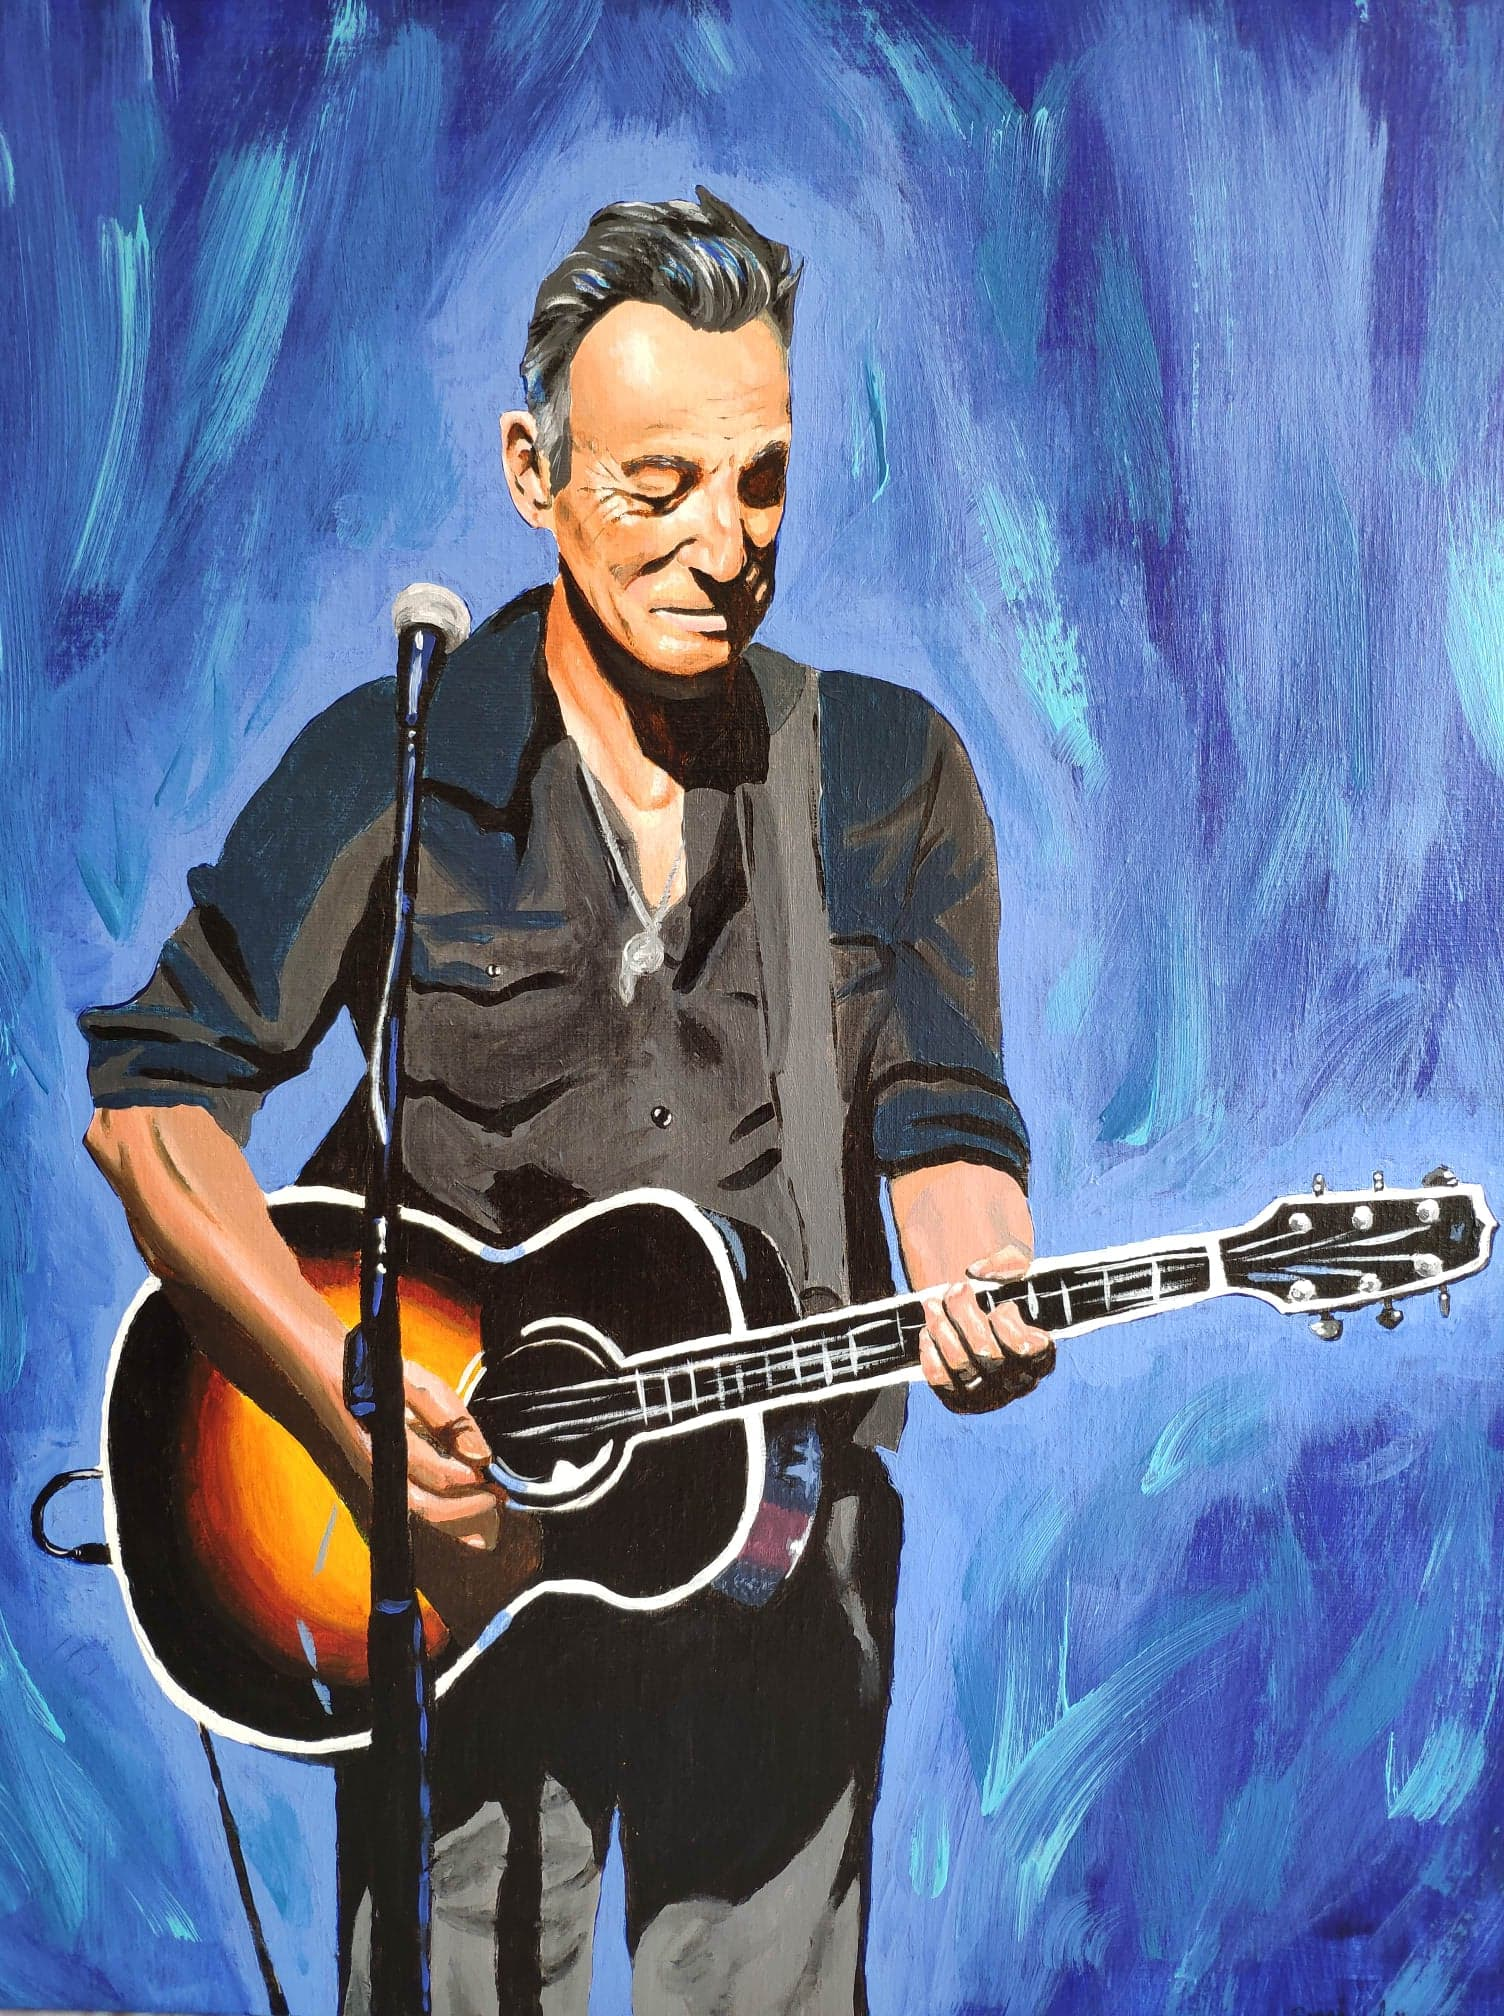 Bruce Springsteen, The Boss, Sarah Anthony, 2020, acrylics on canvas, 25,6 x 19,6 inches (65 x 50 cm)